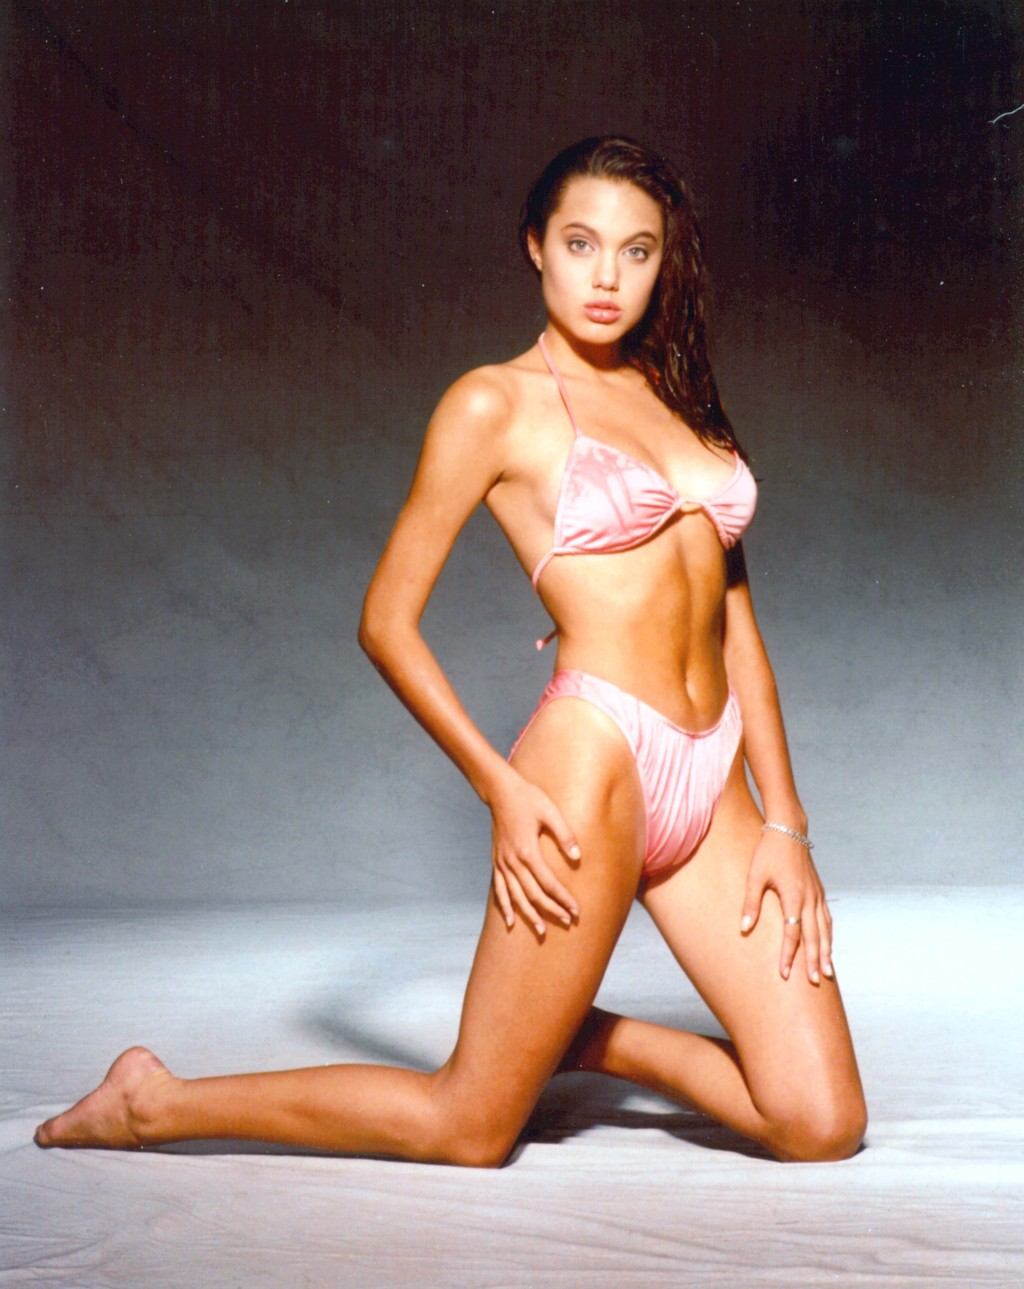 Naked pic of angelina jolie to download